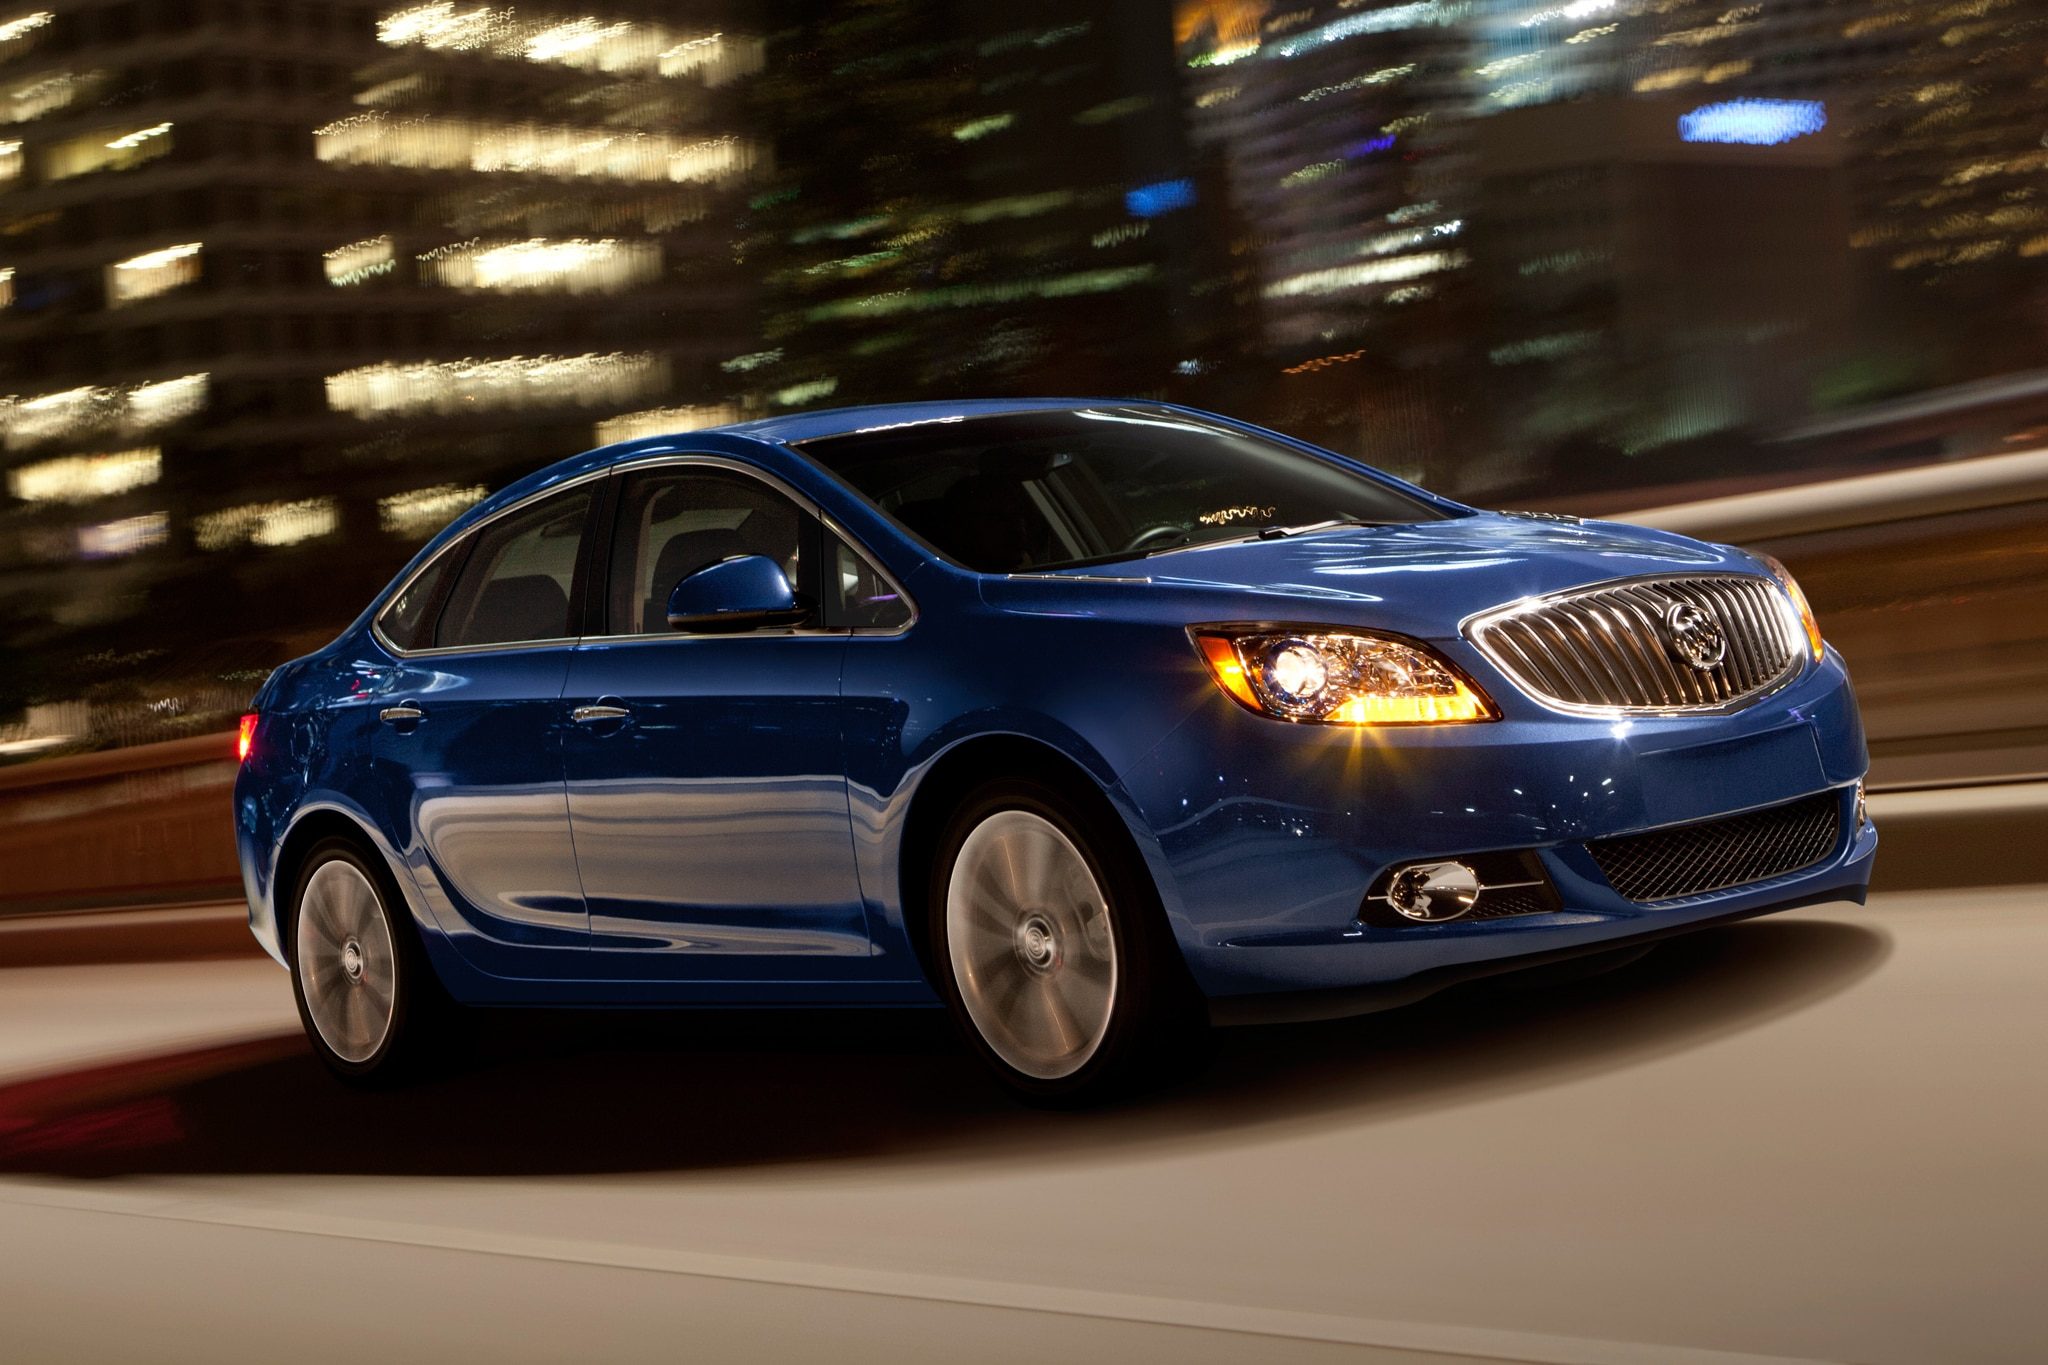 2014 Buick Verano Turbo Three Quarters View 51